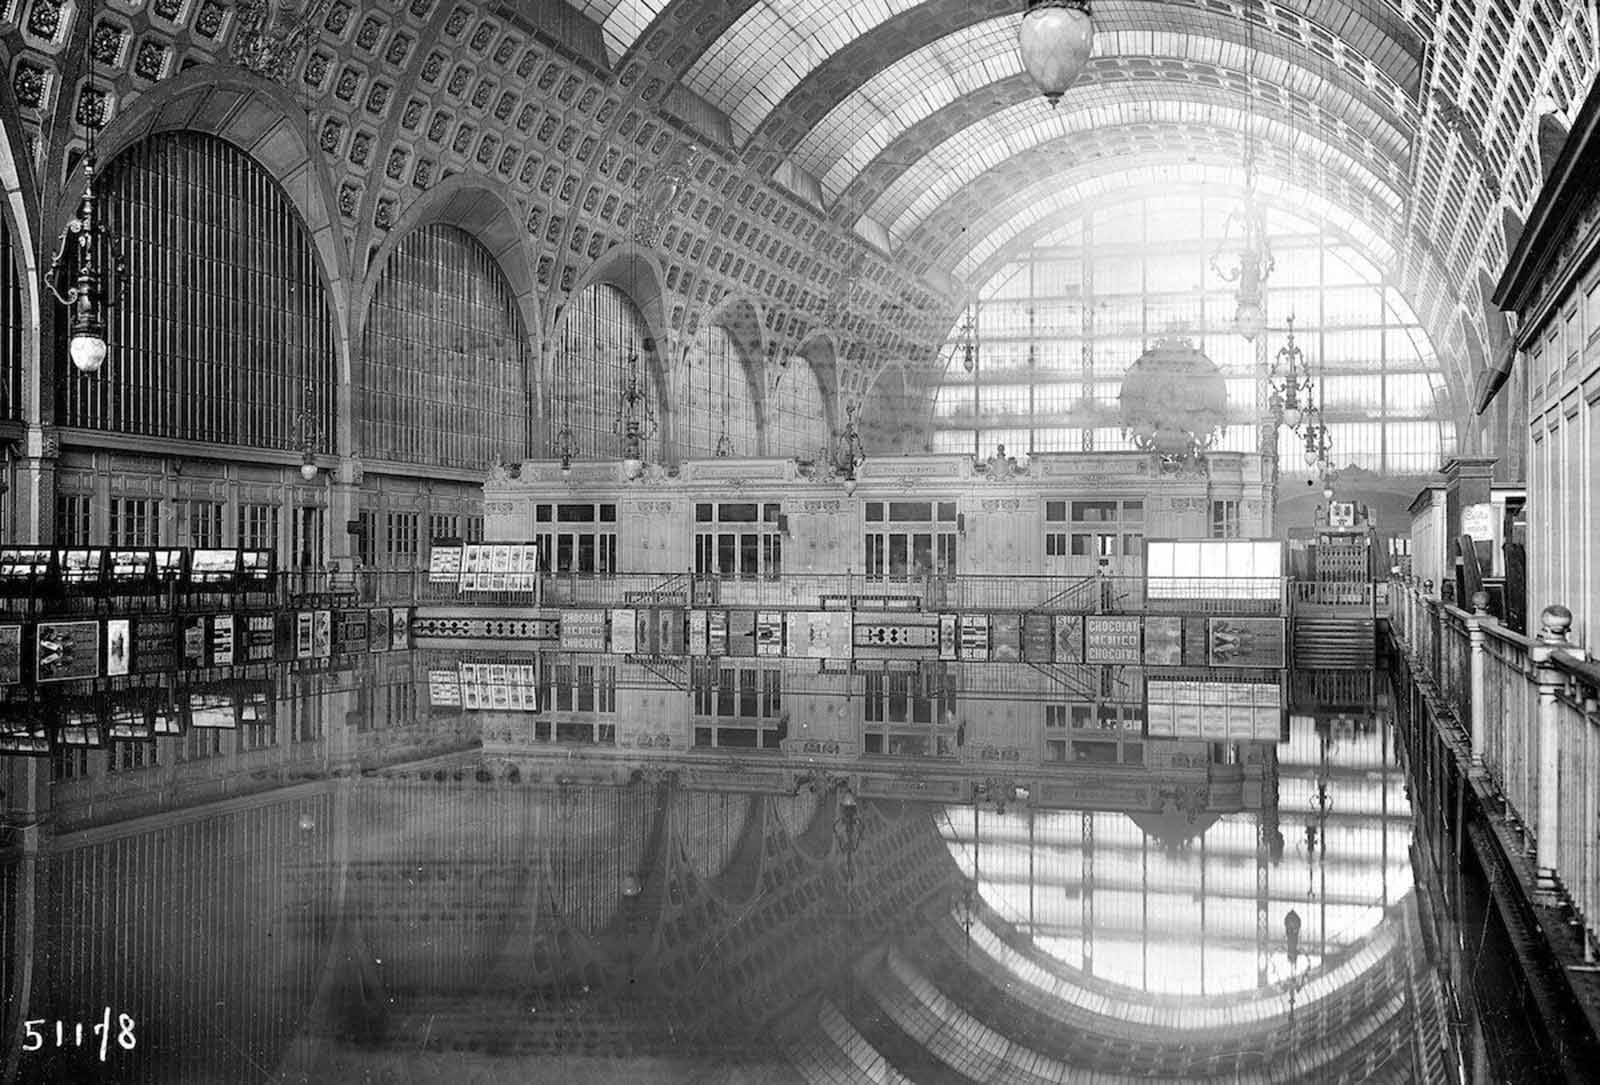 The interior of Gare d'Orsay.